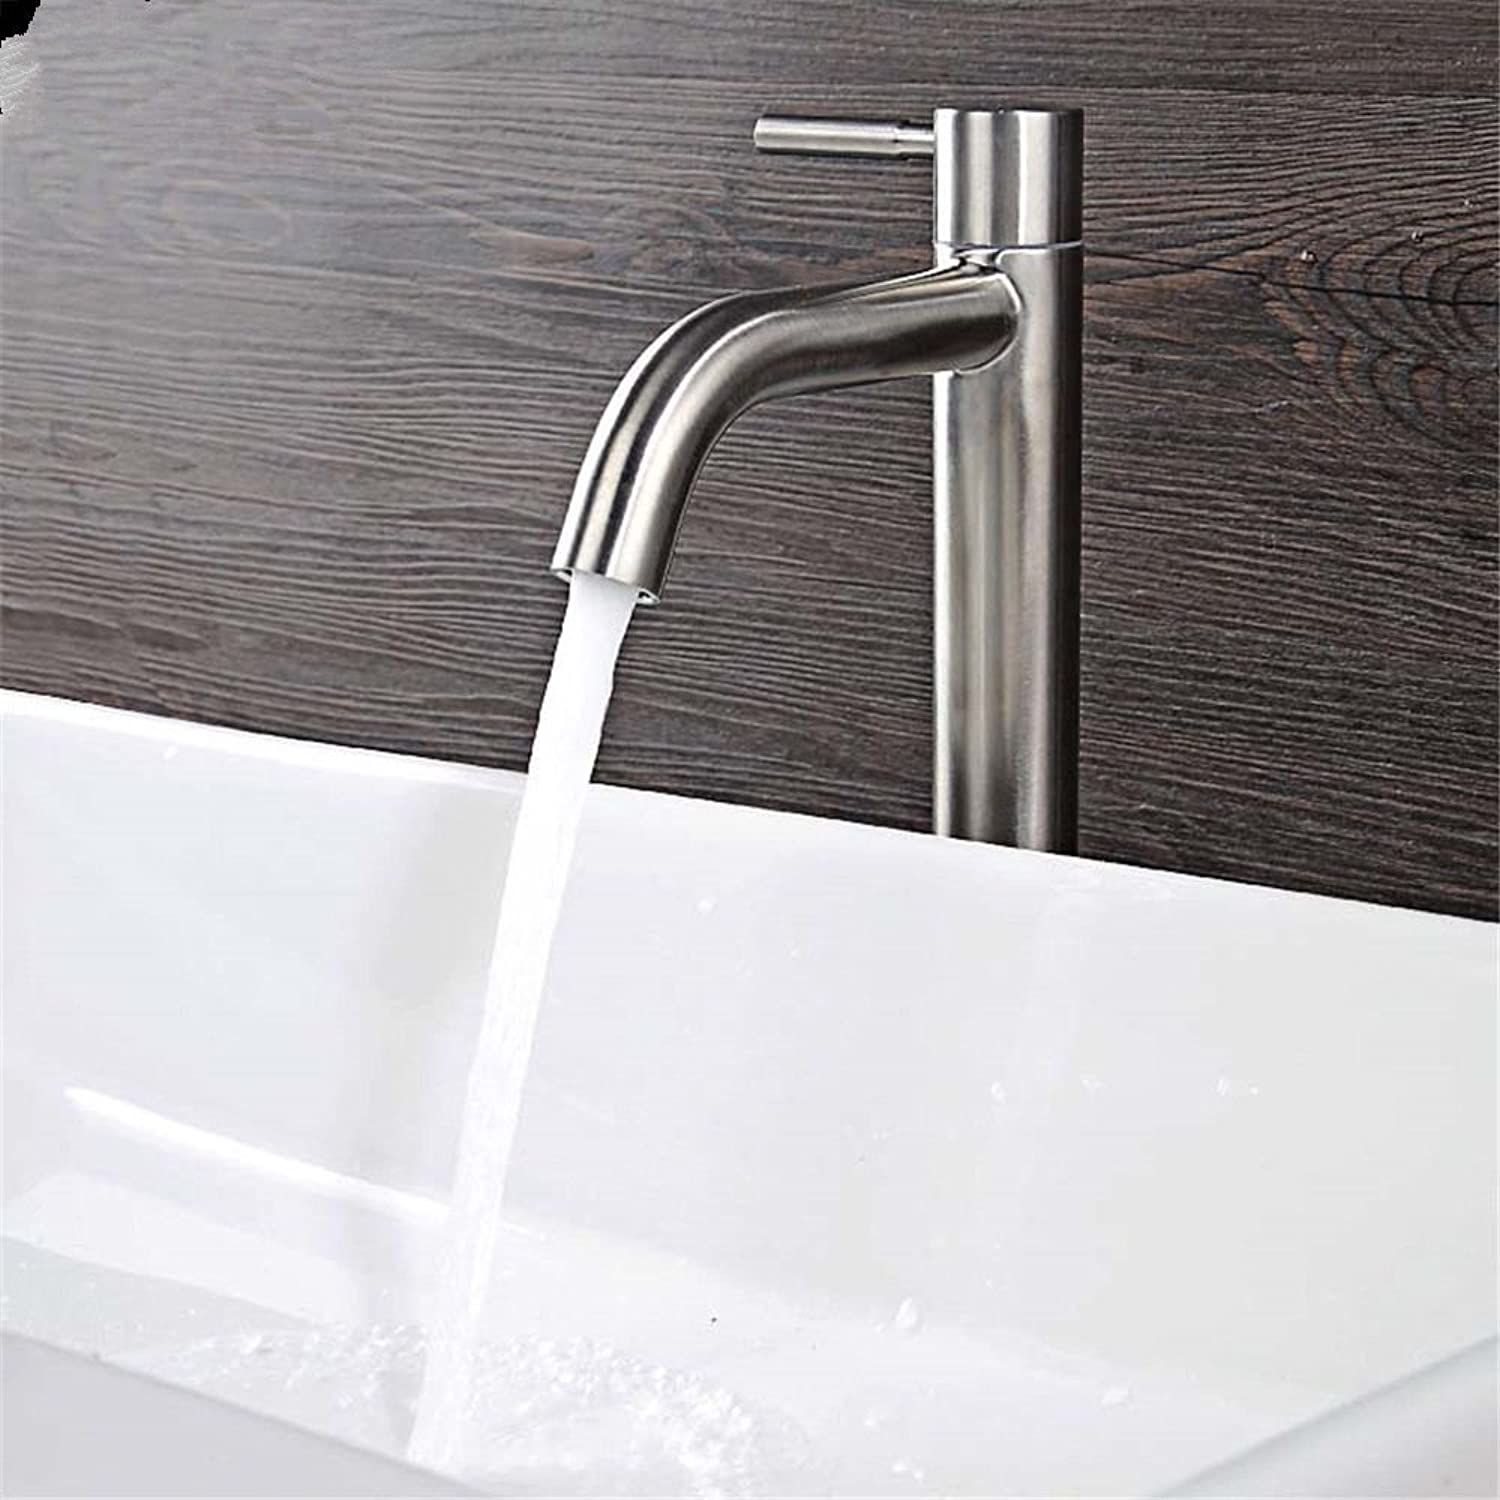 Hlluya Professional Sink Mixer Tap Kitchen Faucet Stainless steel single cold basin faucet basin wash basin mixer single hole cold-water faucet, surface